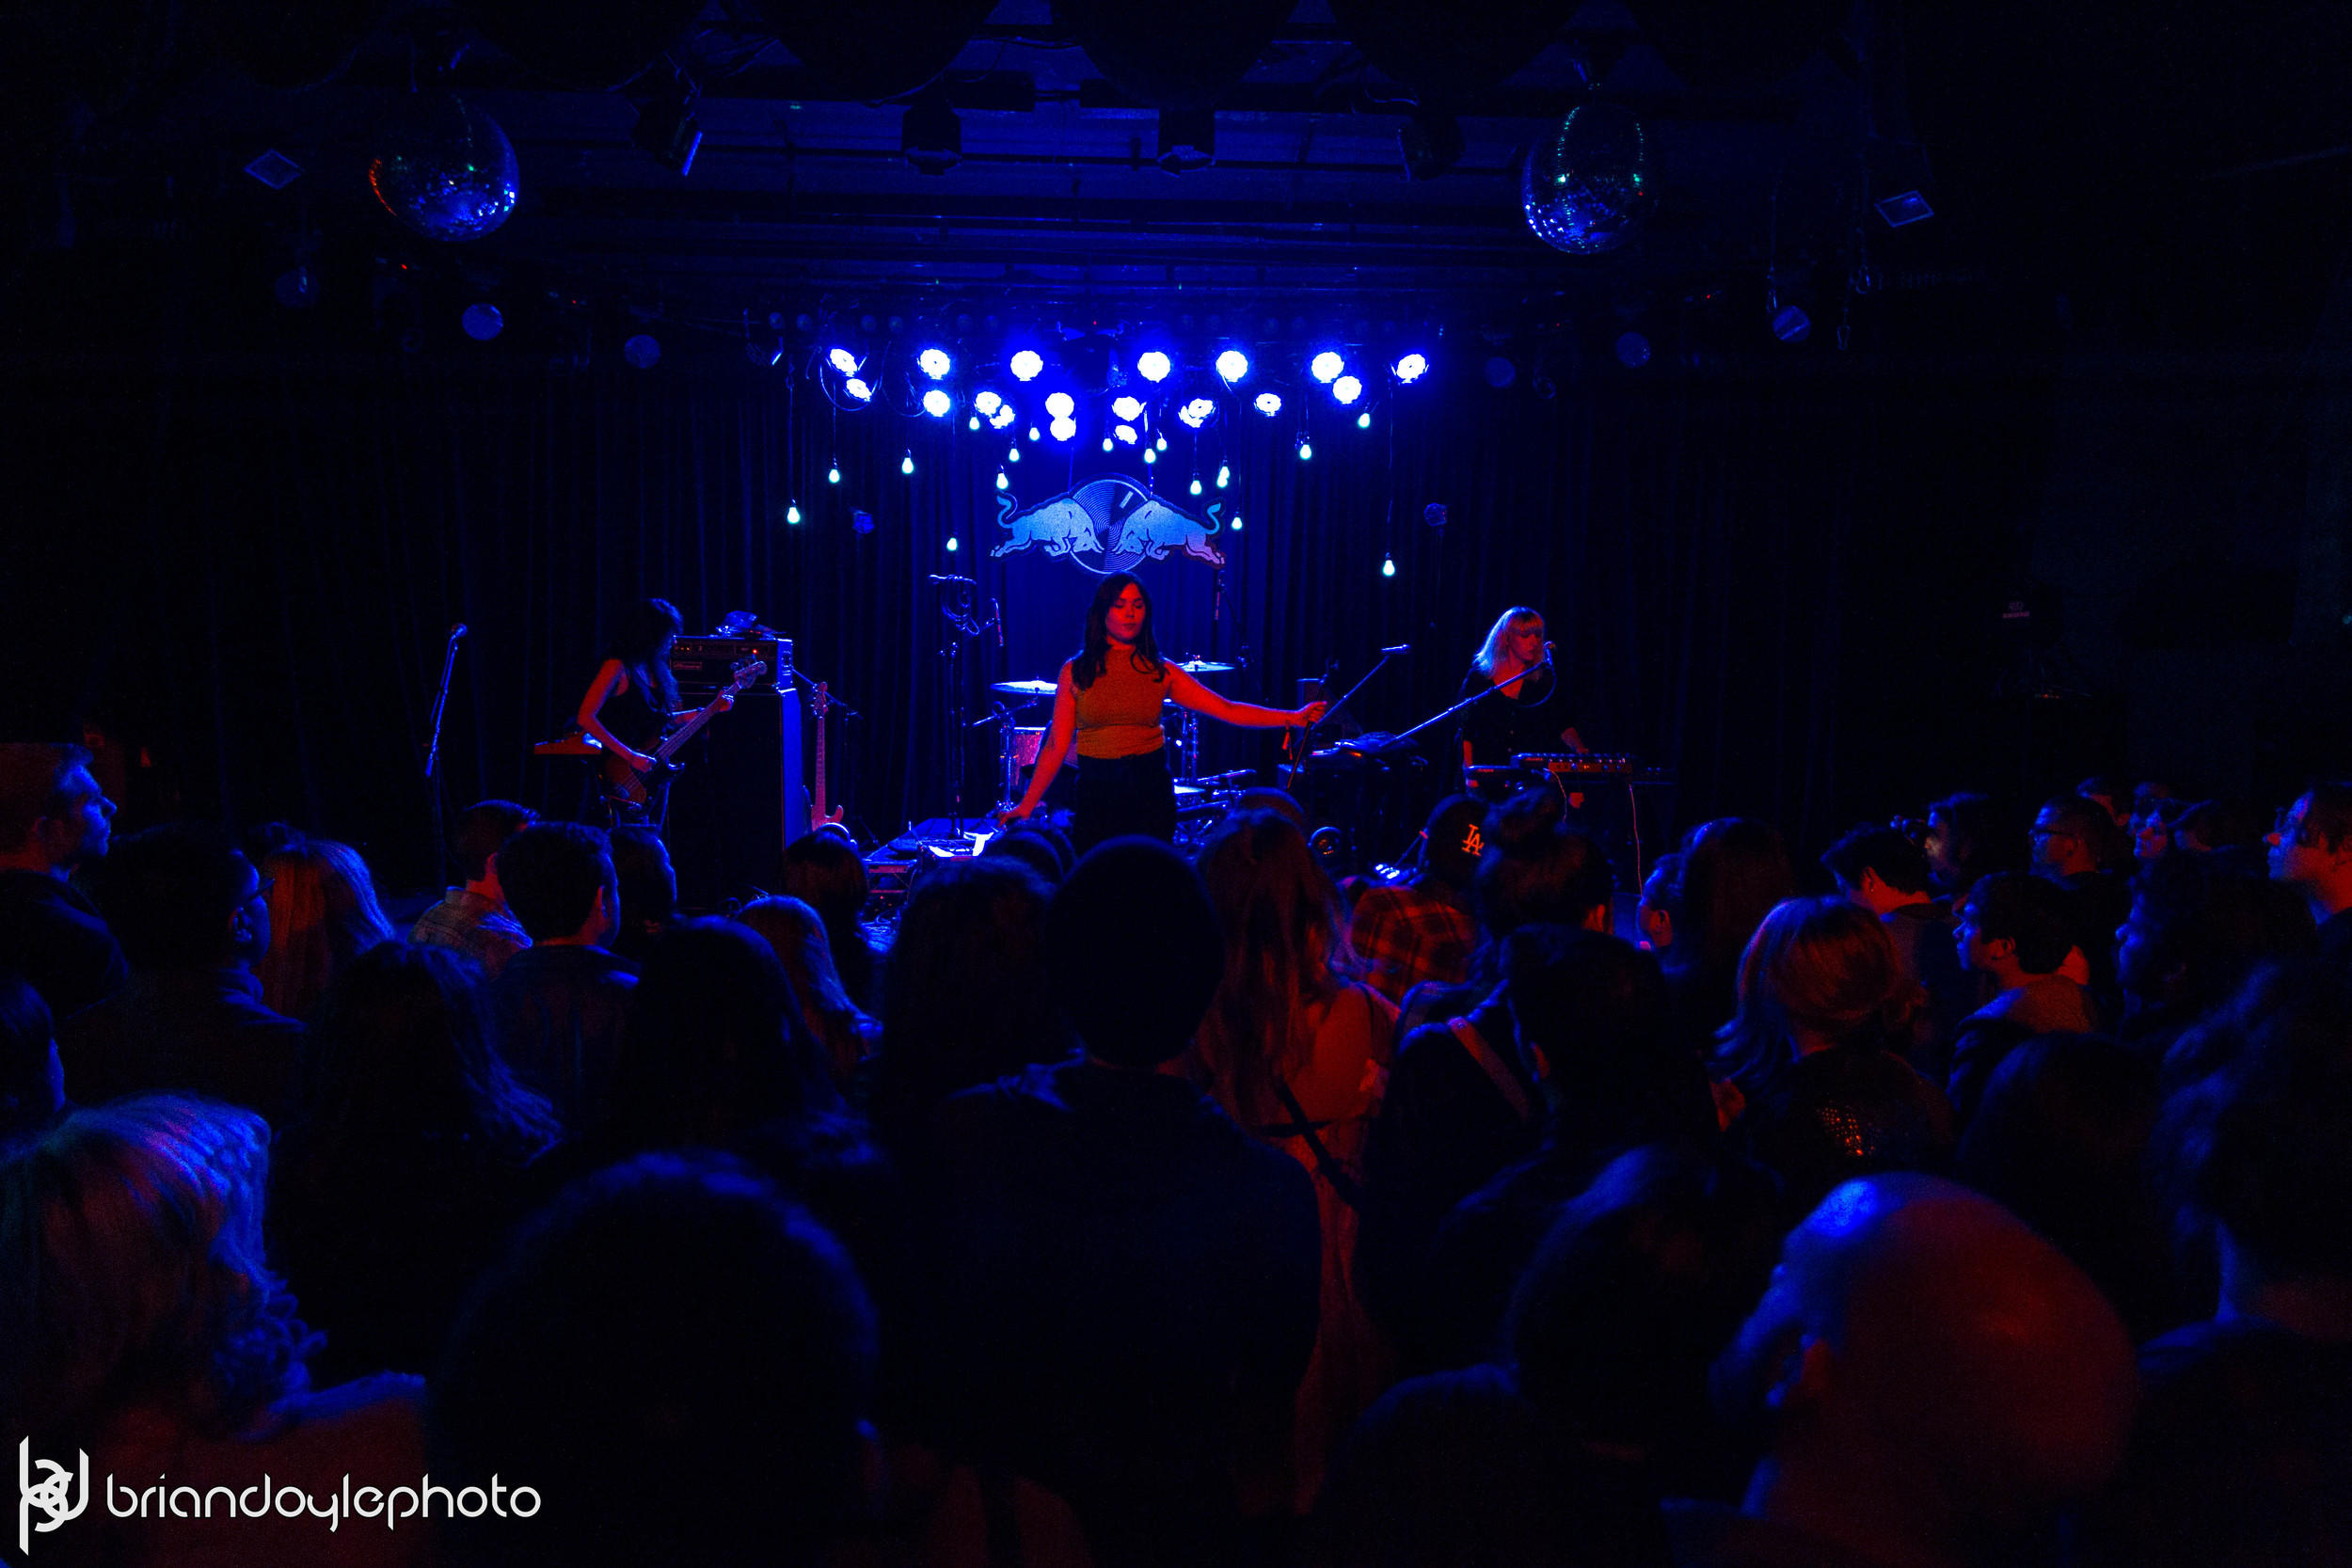 Red Bull - MS MR, Feathers, Electric Sons @ The Roxy 2014.11.02 -39.jpg